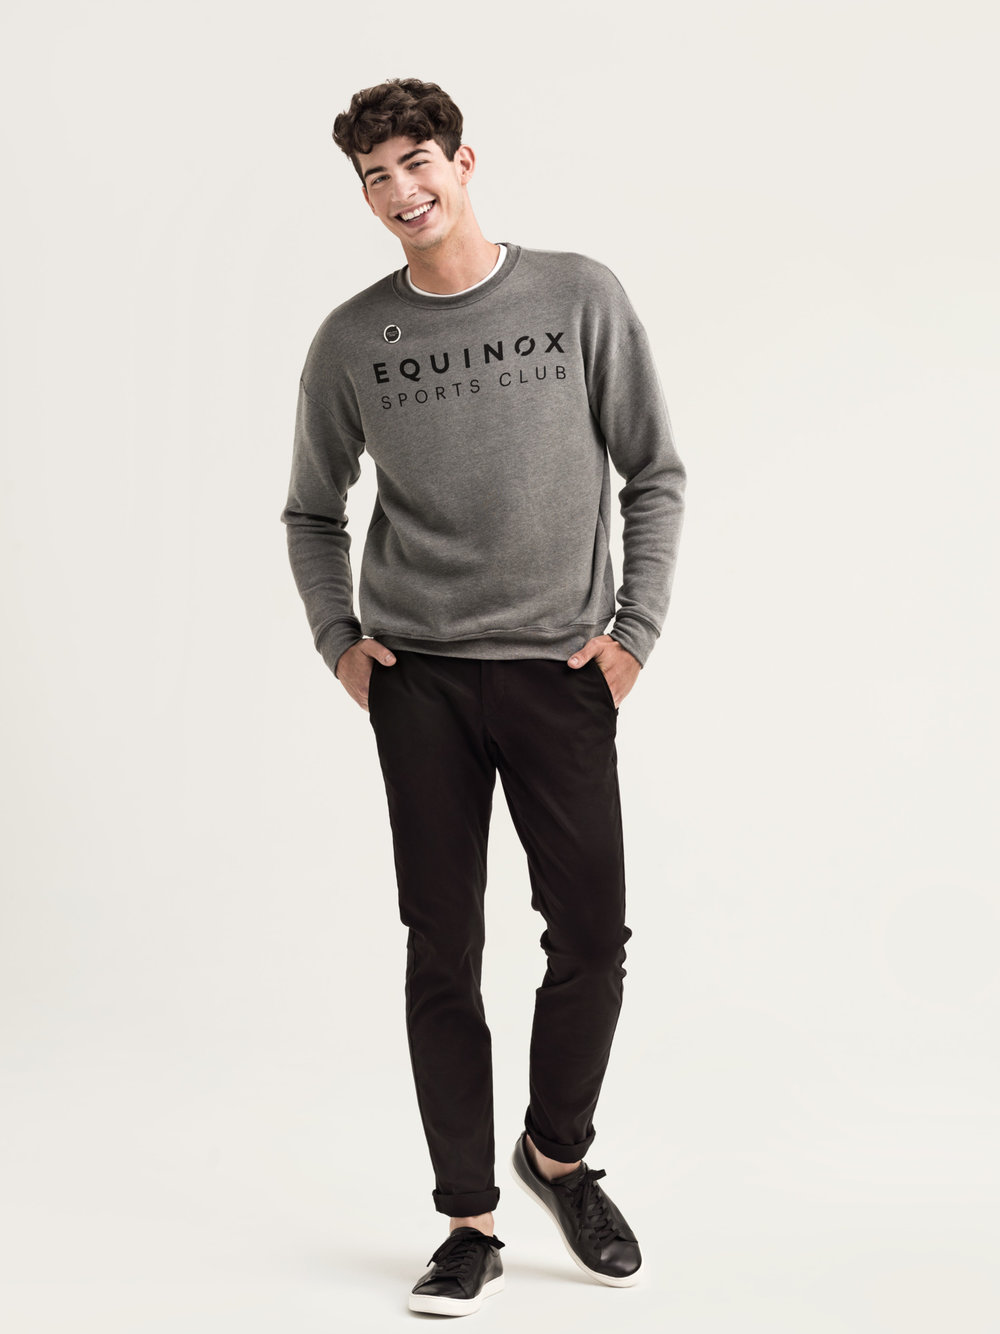 S02_FrontDeskMale_SweatShirt_026_final-lpr.jpg